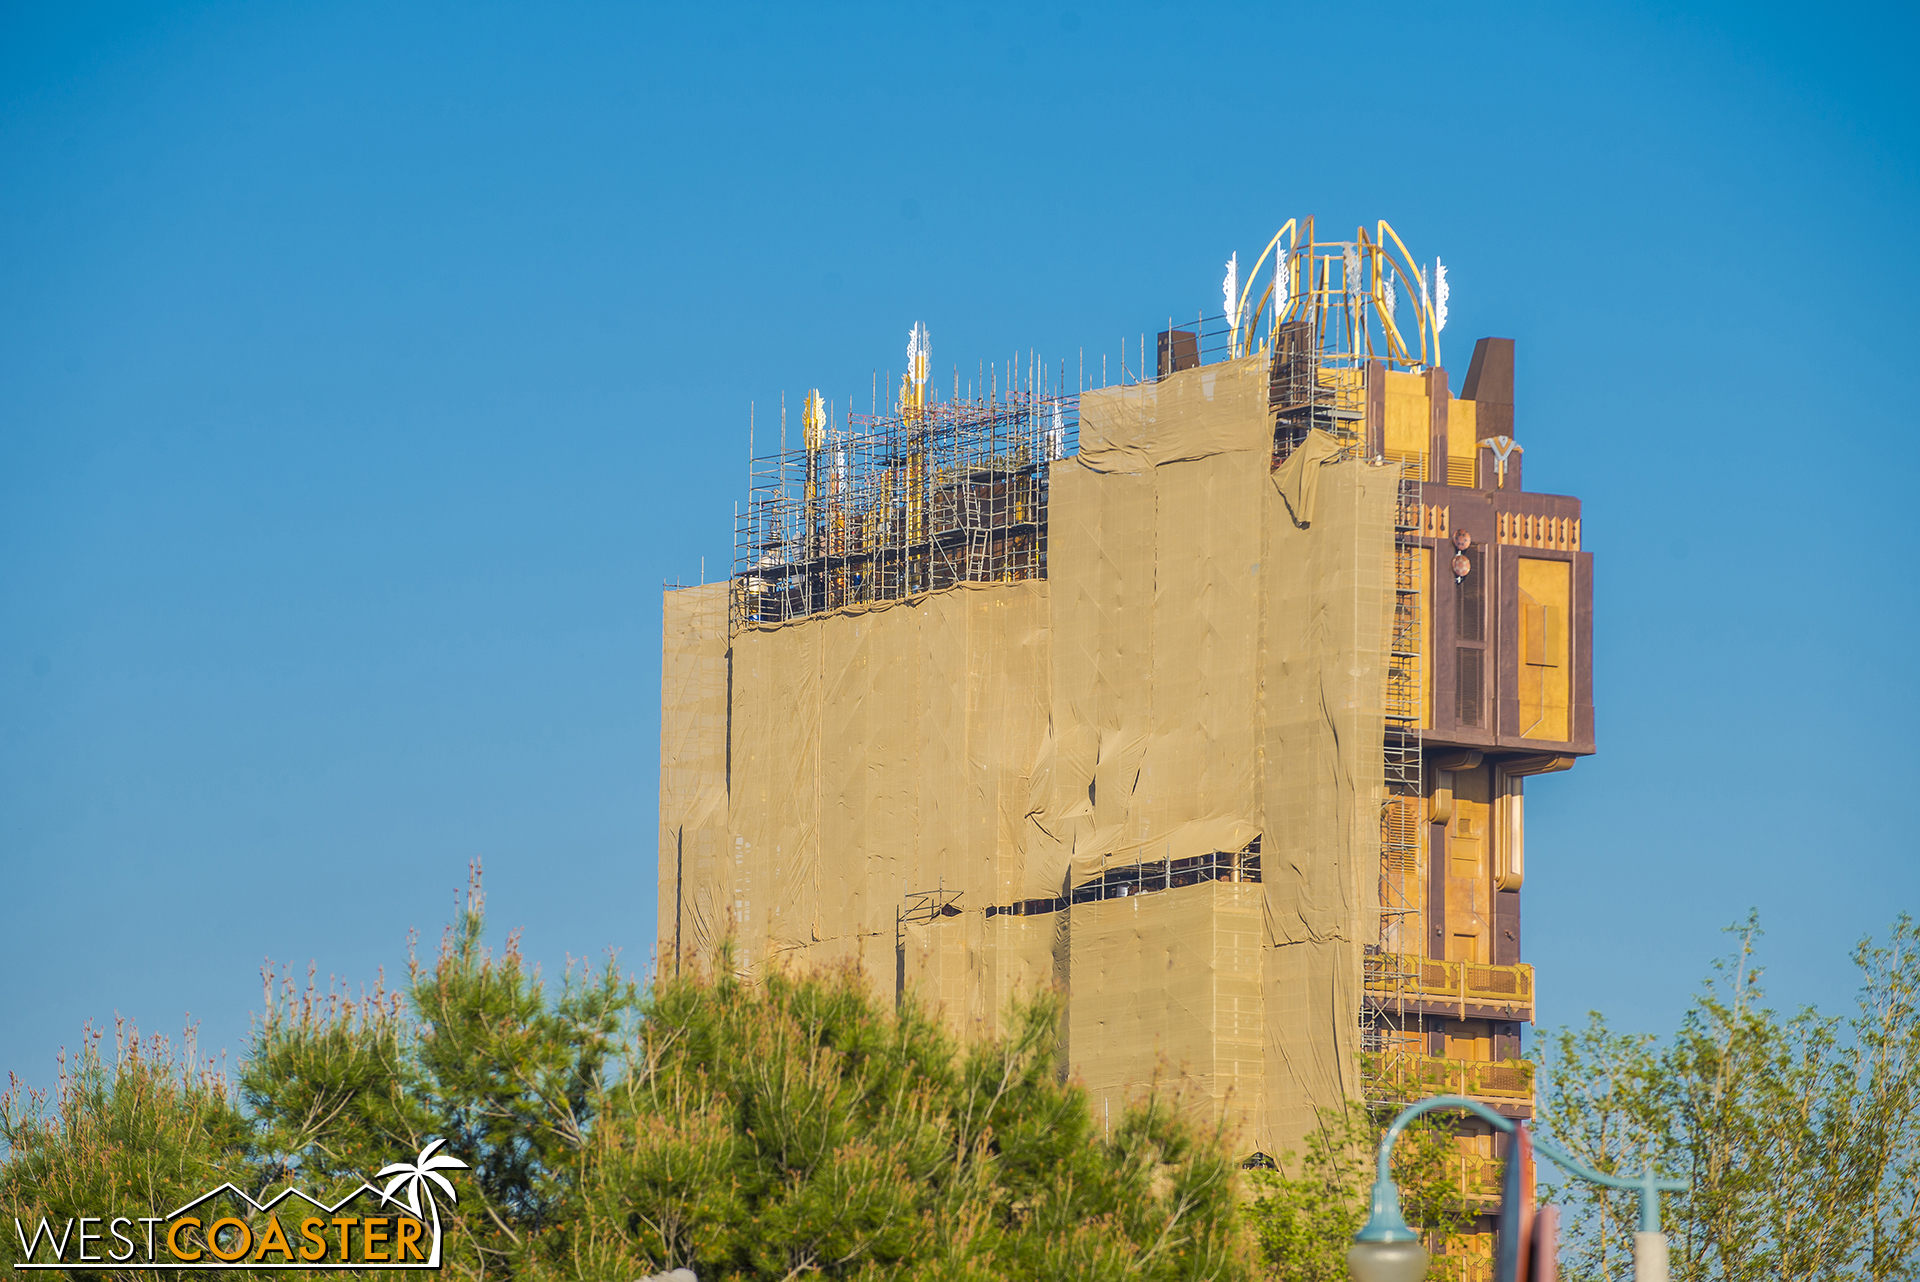 But from different angles, you can see the 1998 Tomorrowland Revival paint scheme, or perhaps you can call it the corndog palette paint scheme. Again, not that there are any corn dogs here. That would be food, which is conspicuously absent from this update due to yesterday's overload.